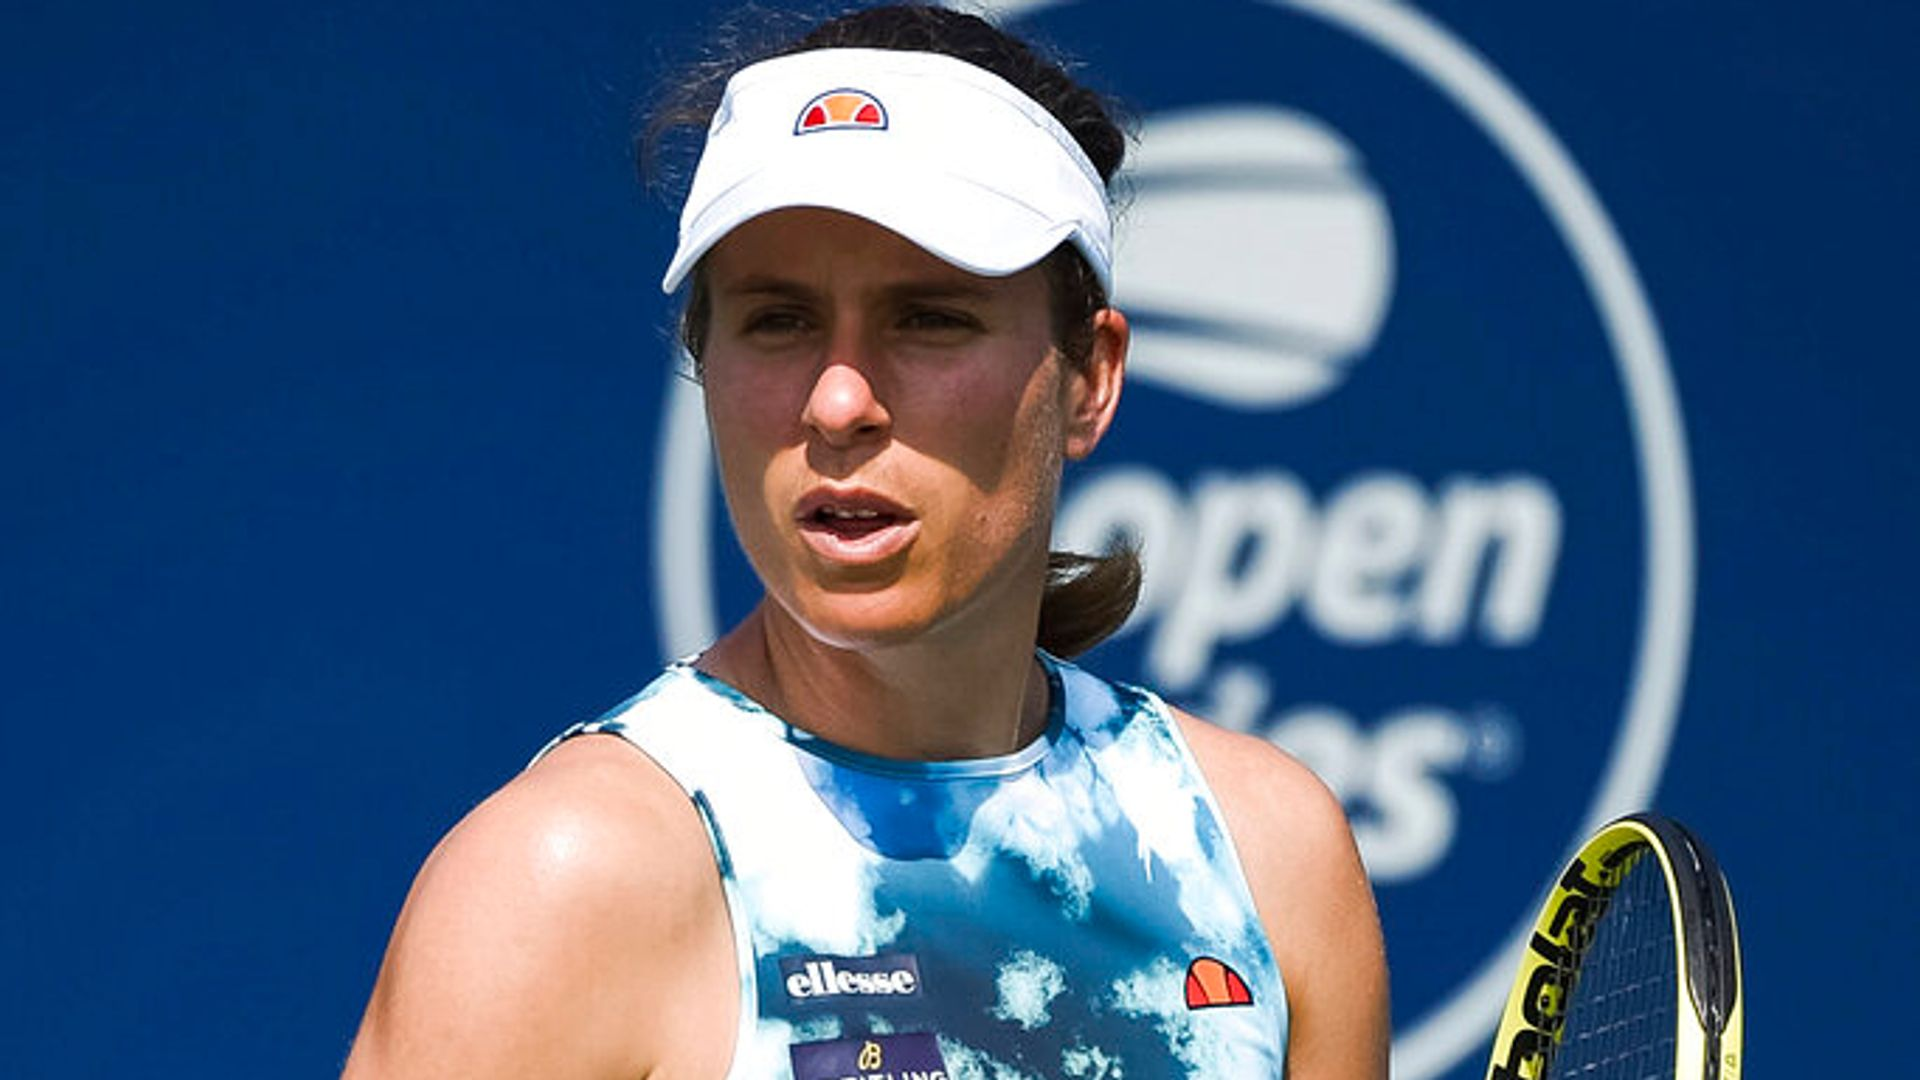 US Open: Johanna Konta forced to withdraw with Emma Raducanu set to face a new opponent on Tuesday